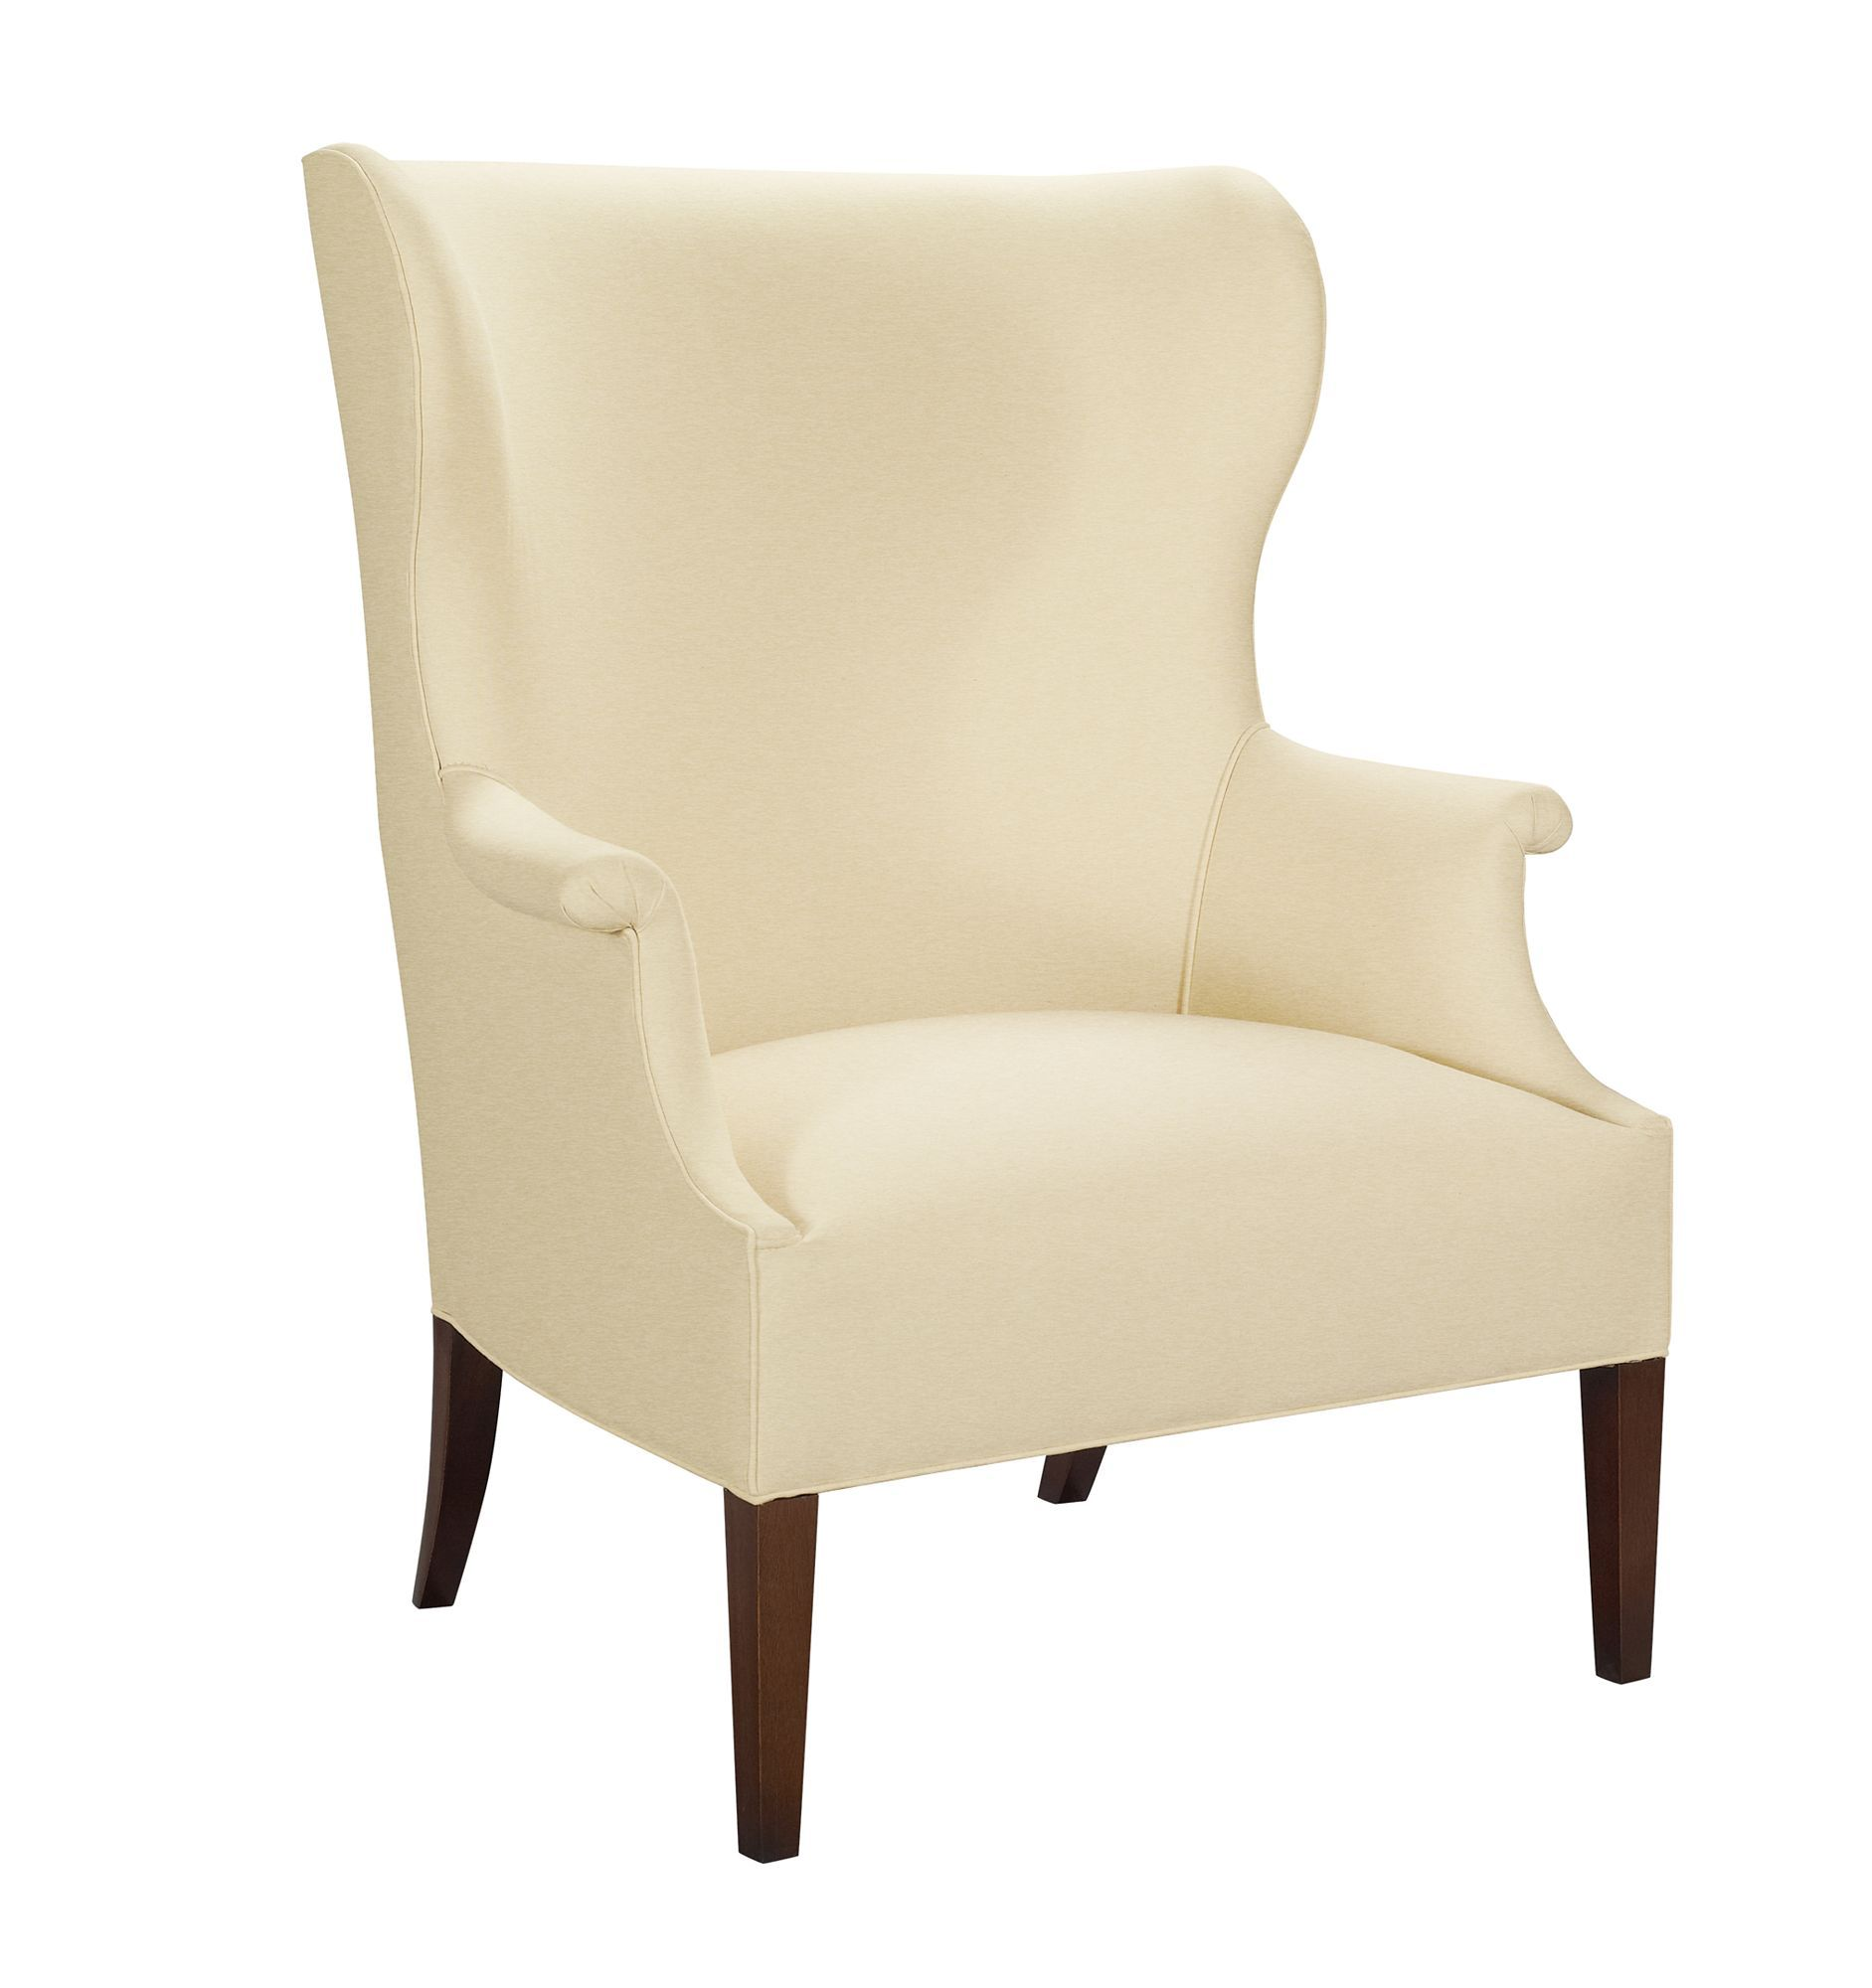 Josephine Wing Chair in 2020 Hickory chair, Furniture